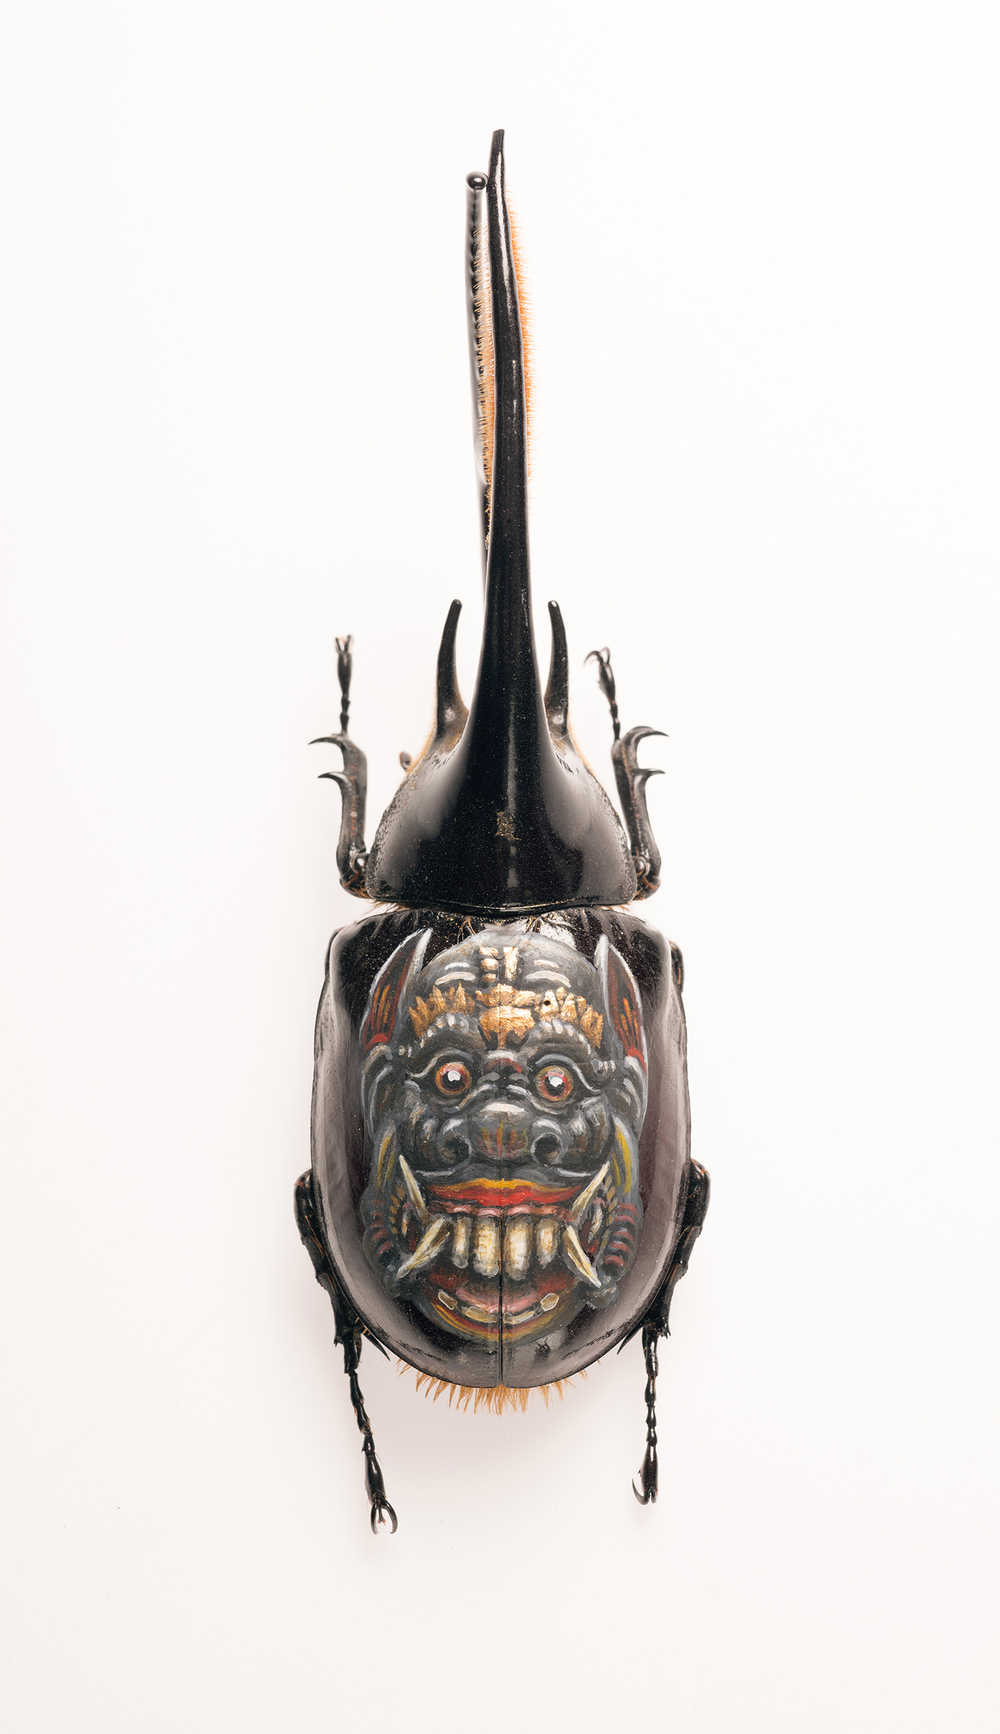 Evan Skrederstu.  Bali Mask.  2014 – acrylic on beetle, 4″ x 1.5″.